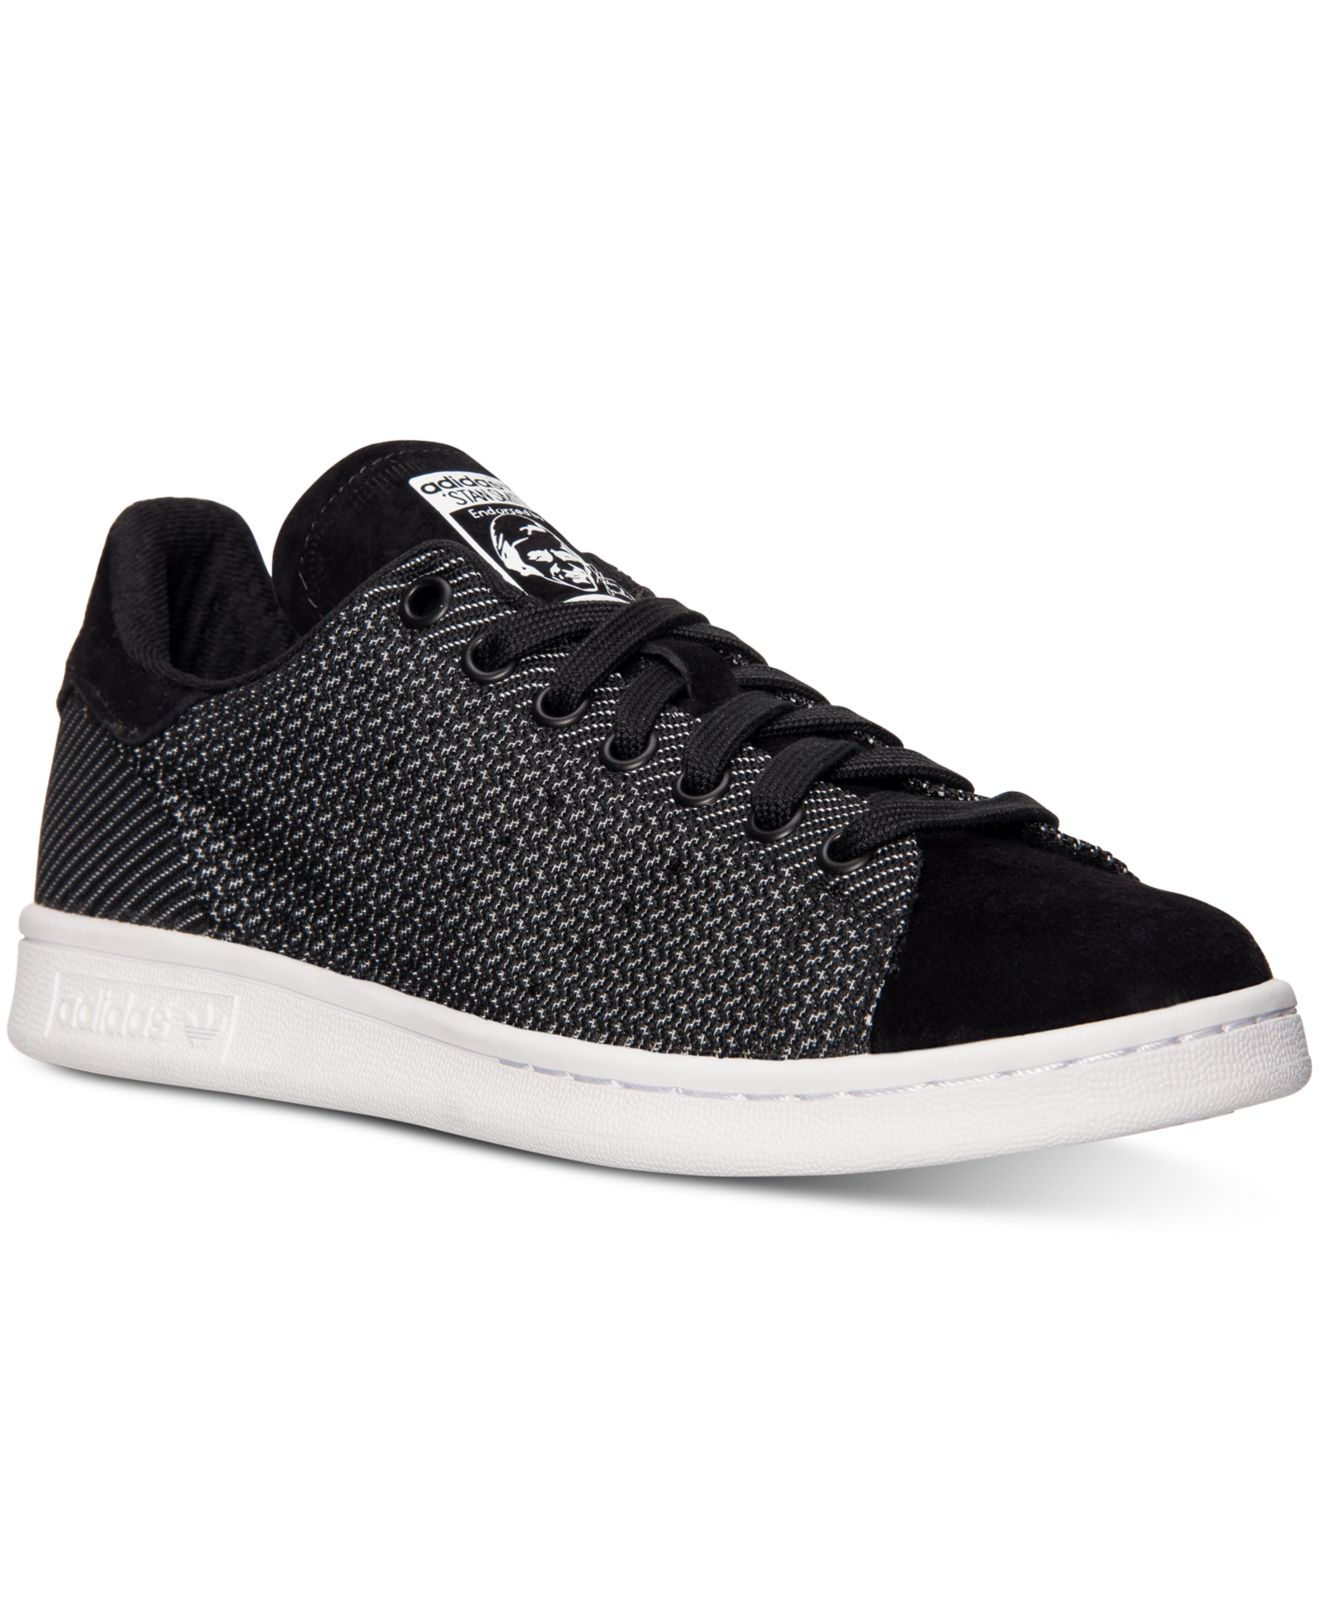 Nordstrom Mens Perforated Shoes